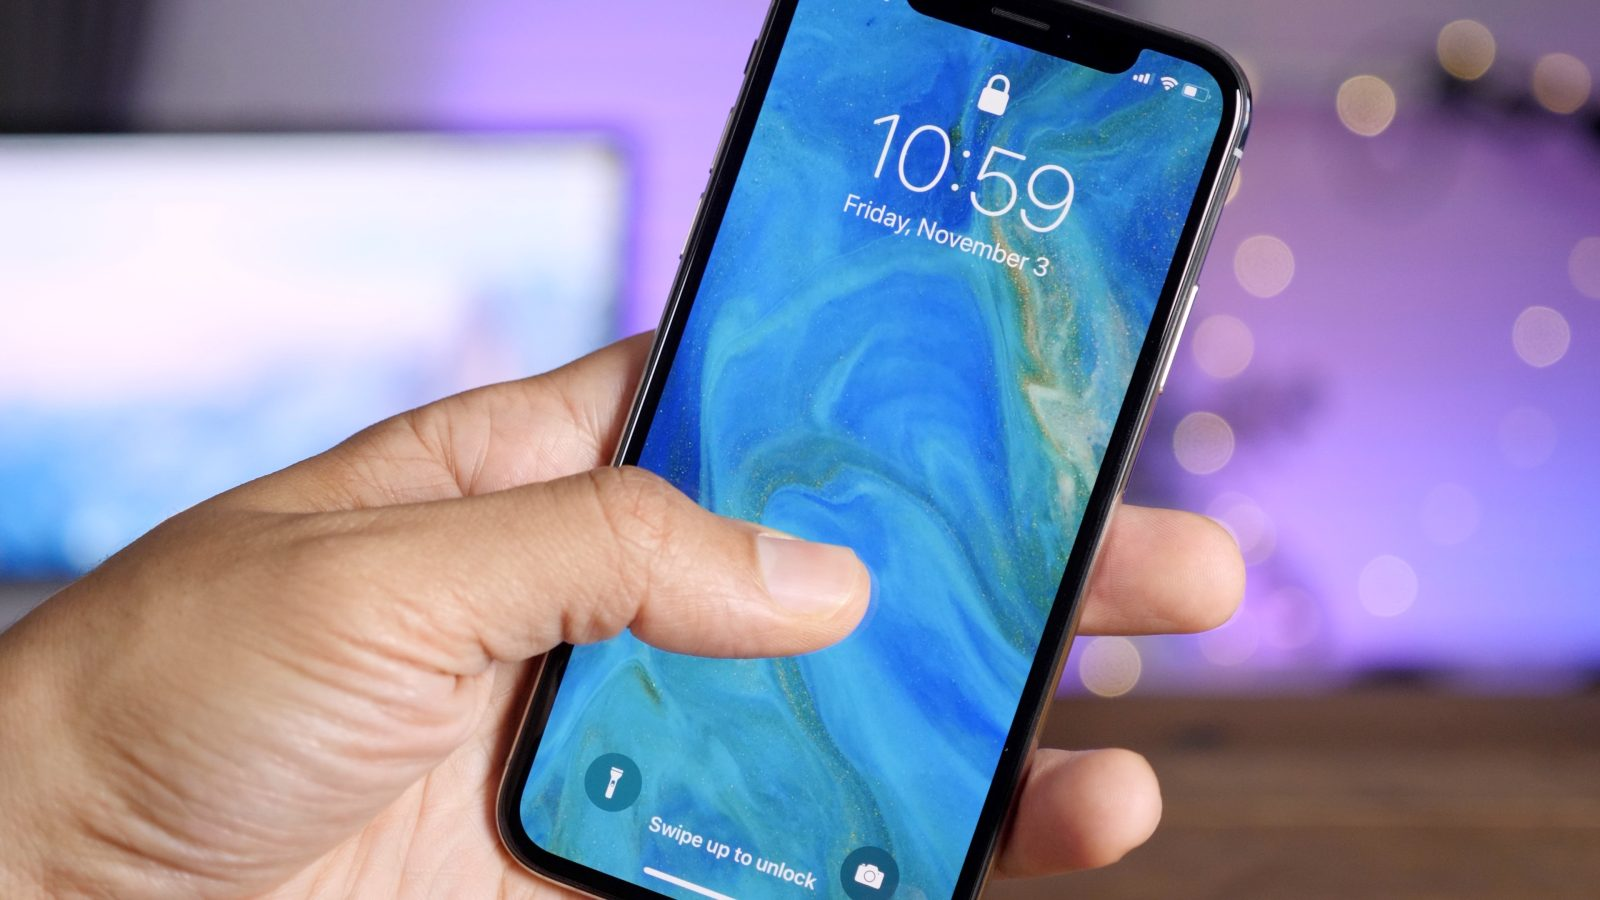 KGI: iPhone X demand & growth strong into 2018, iPhone 8 Plus selling better than expected | 9to5Mac